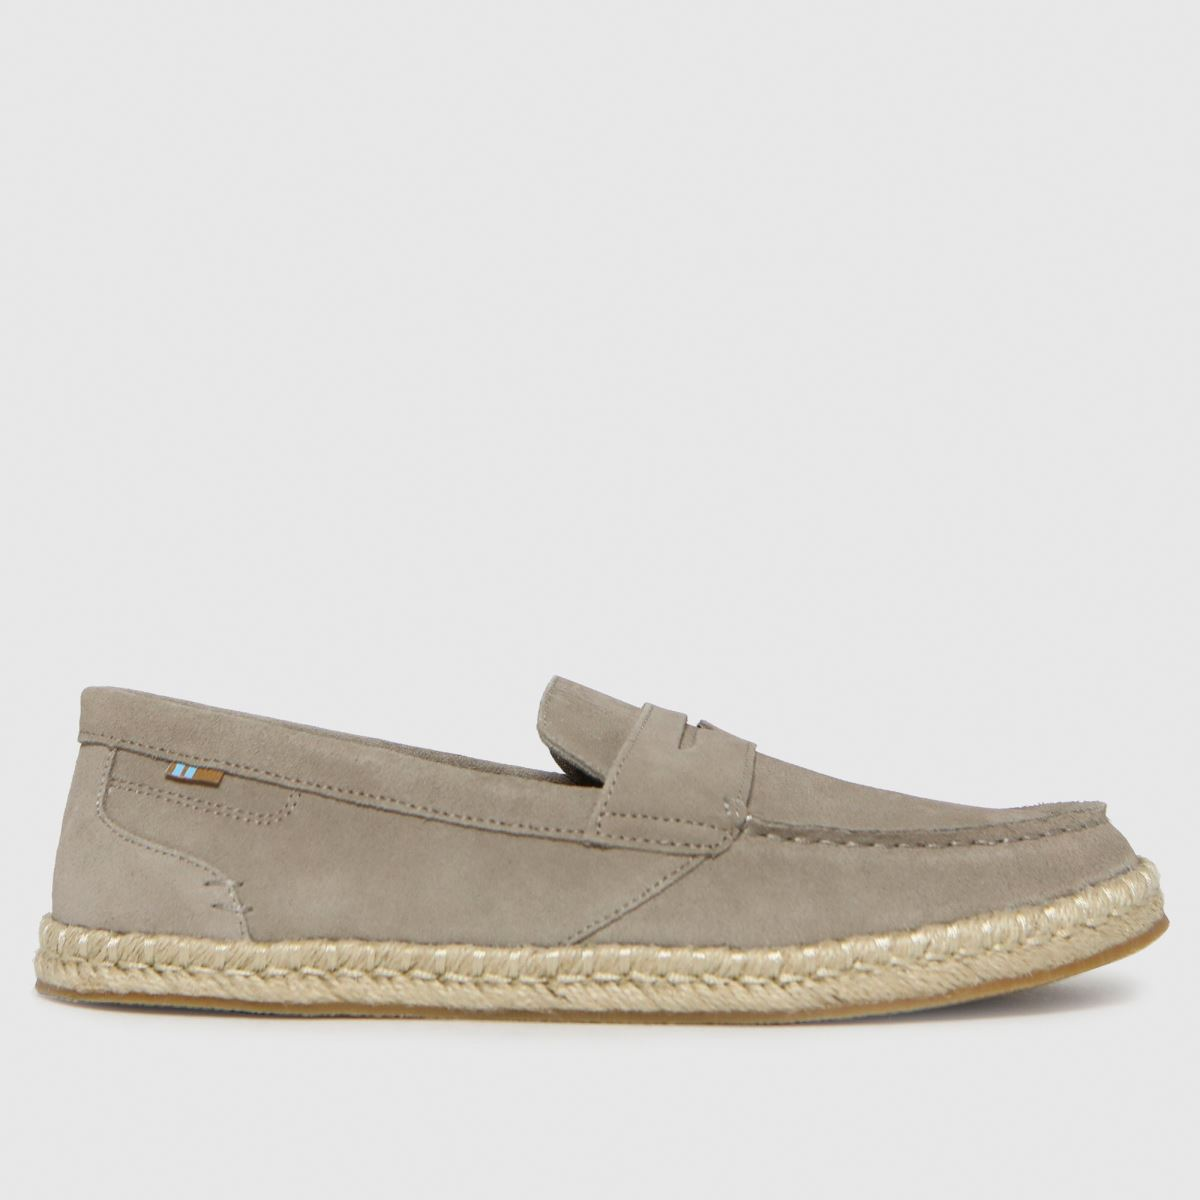 TOMS Stone Stanford Rope Shoes